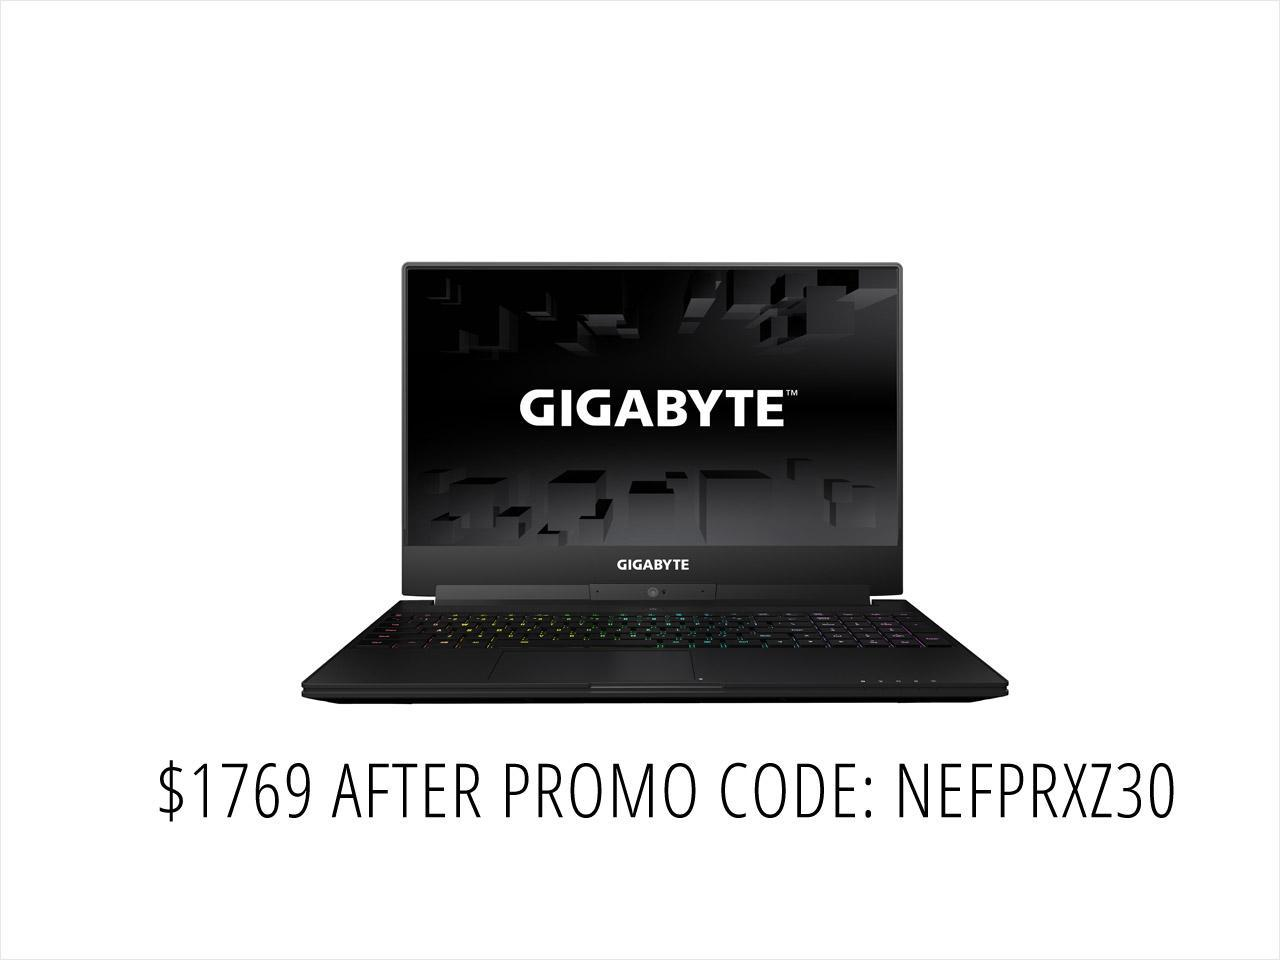 "GIGABYTE Aero 15W-BK4 15.6"" Intel Core i7 7th Gen 7700HQ (2.80 GHz) NVIDIA GeForce GTX 1060 16 GB Memory 512 GB M.2 SSD Windows 10 Home 64-Bit Premium Thin and Light Laptop Battery Capacity up to 10 hours X-Rite Pantone Certified (Black)"